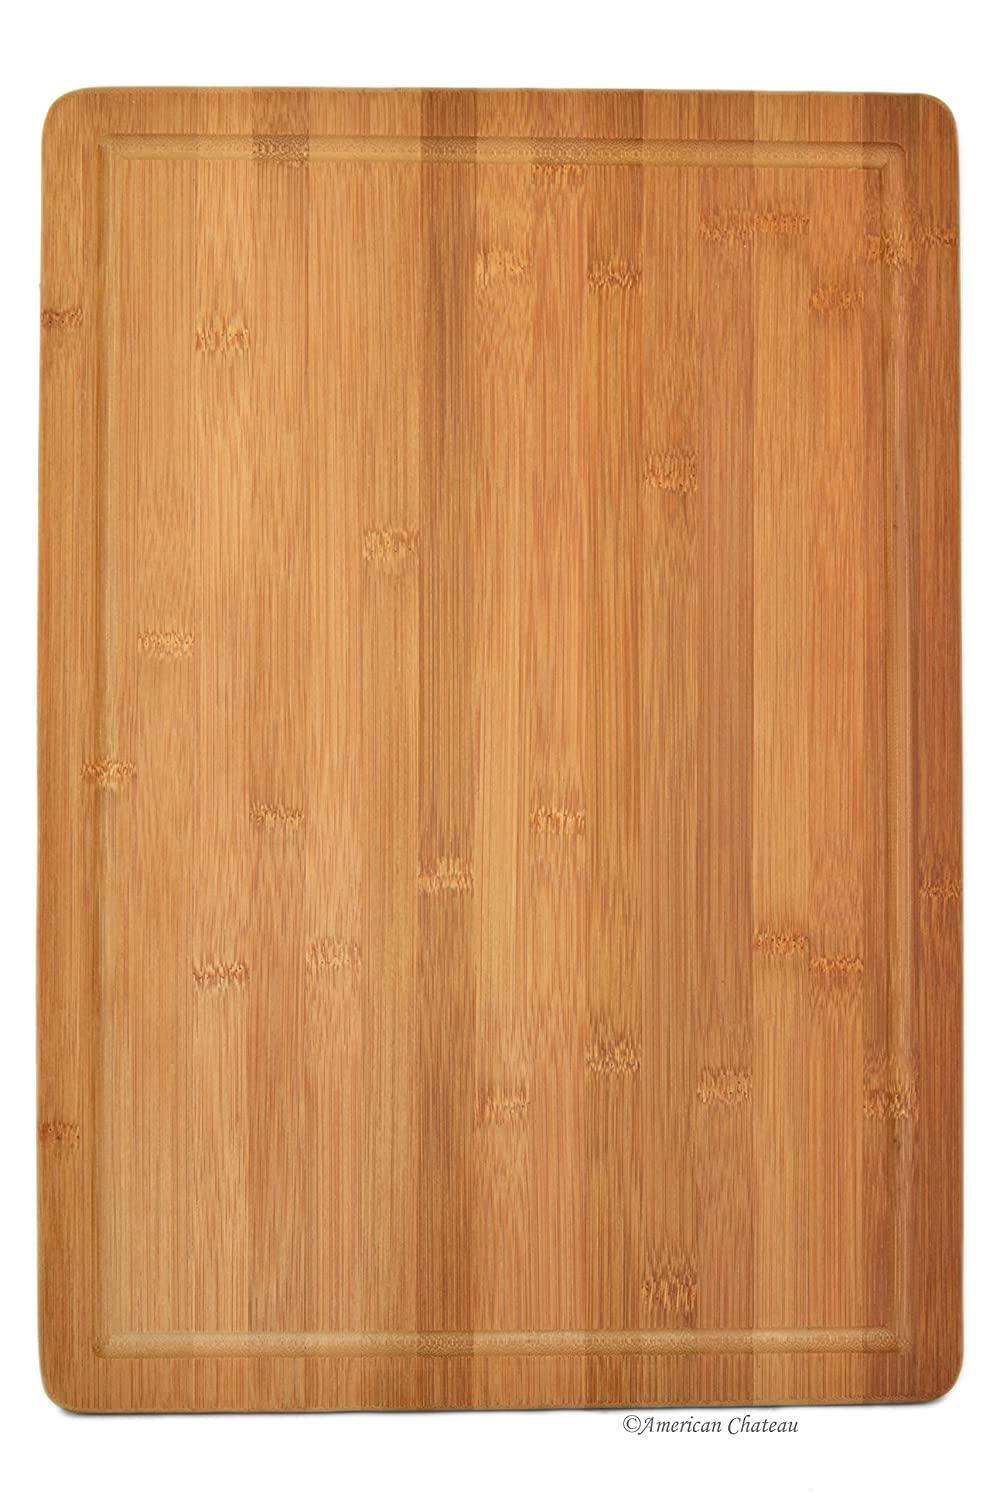 20 x 14 Large Natural Bamboo Butcher Block Cutting Board with Drip Groove American Chateau